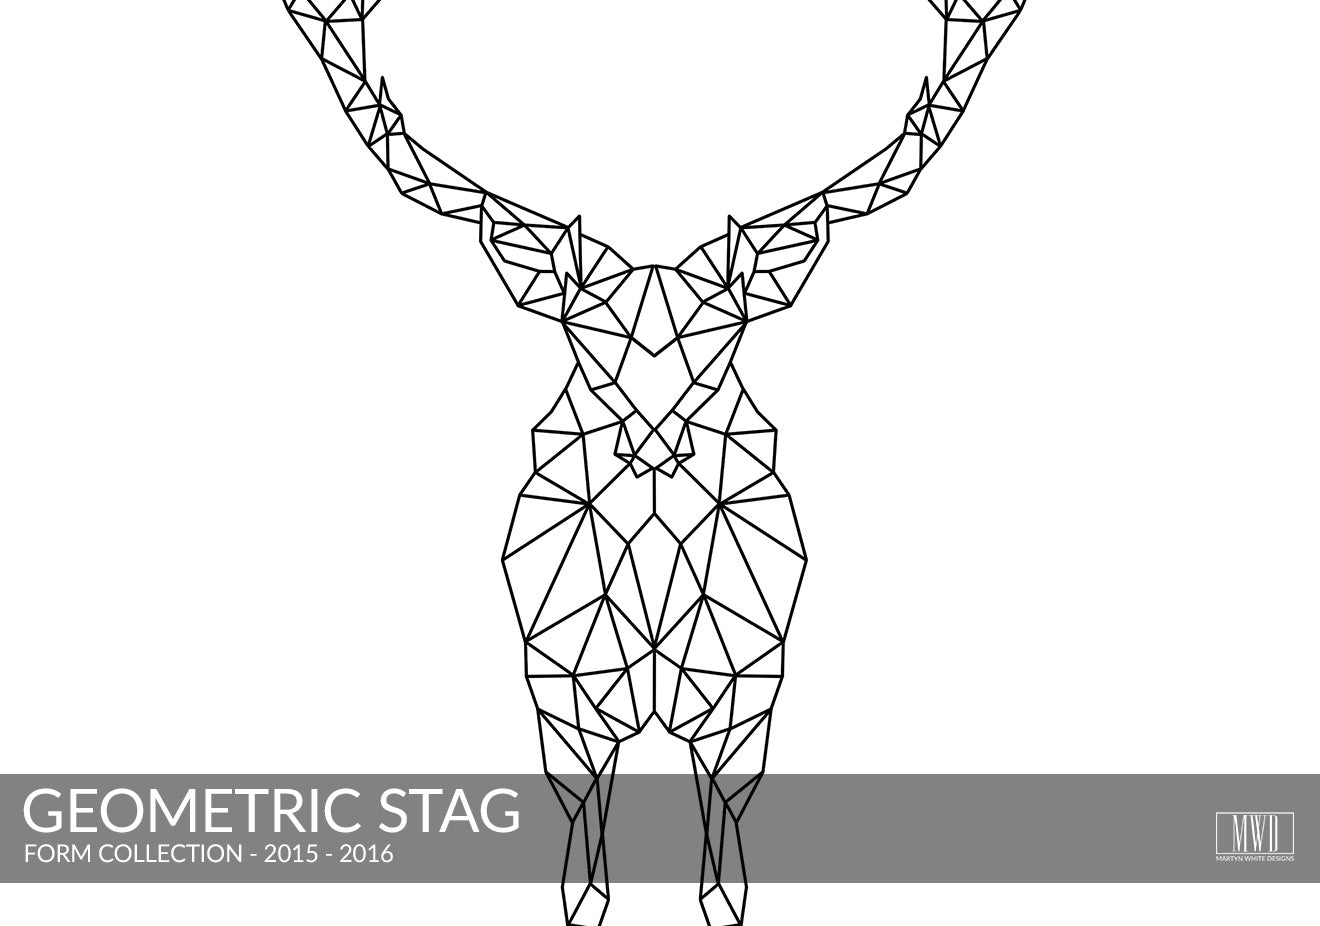 Geometric Stag black and white art print